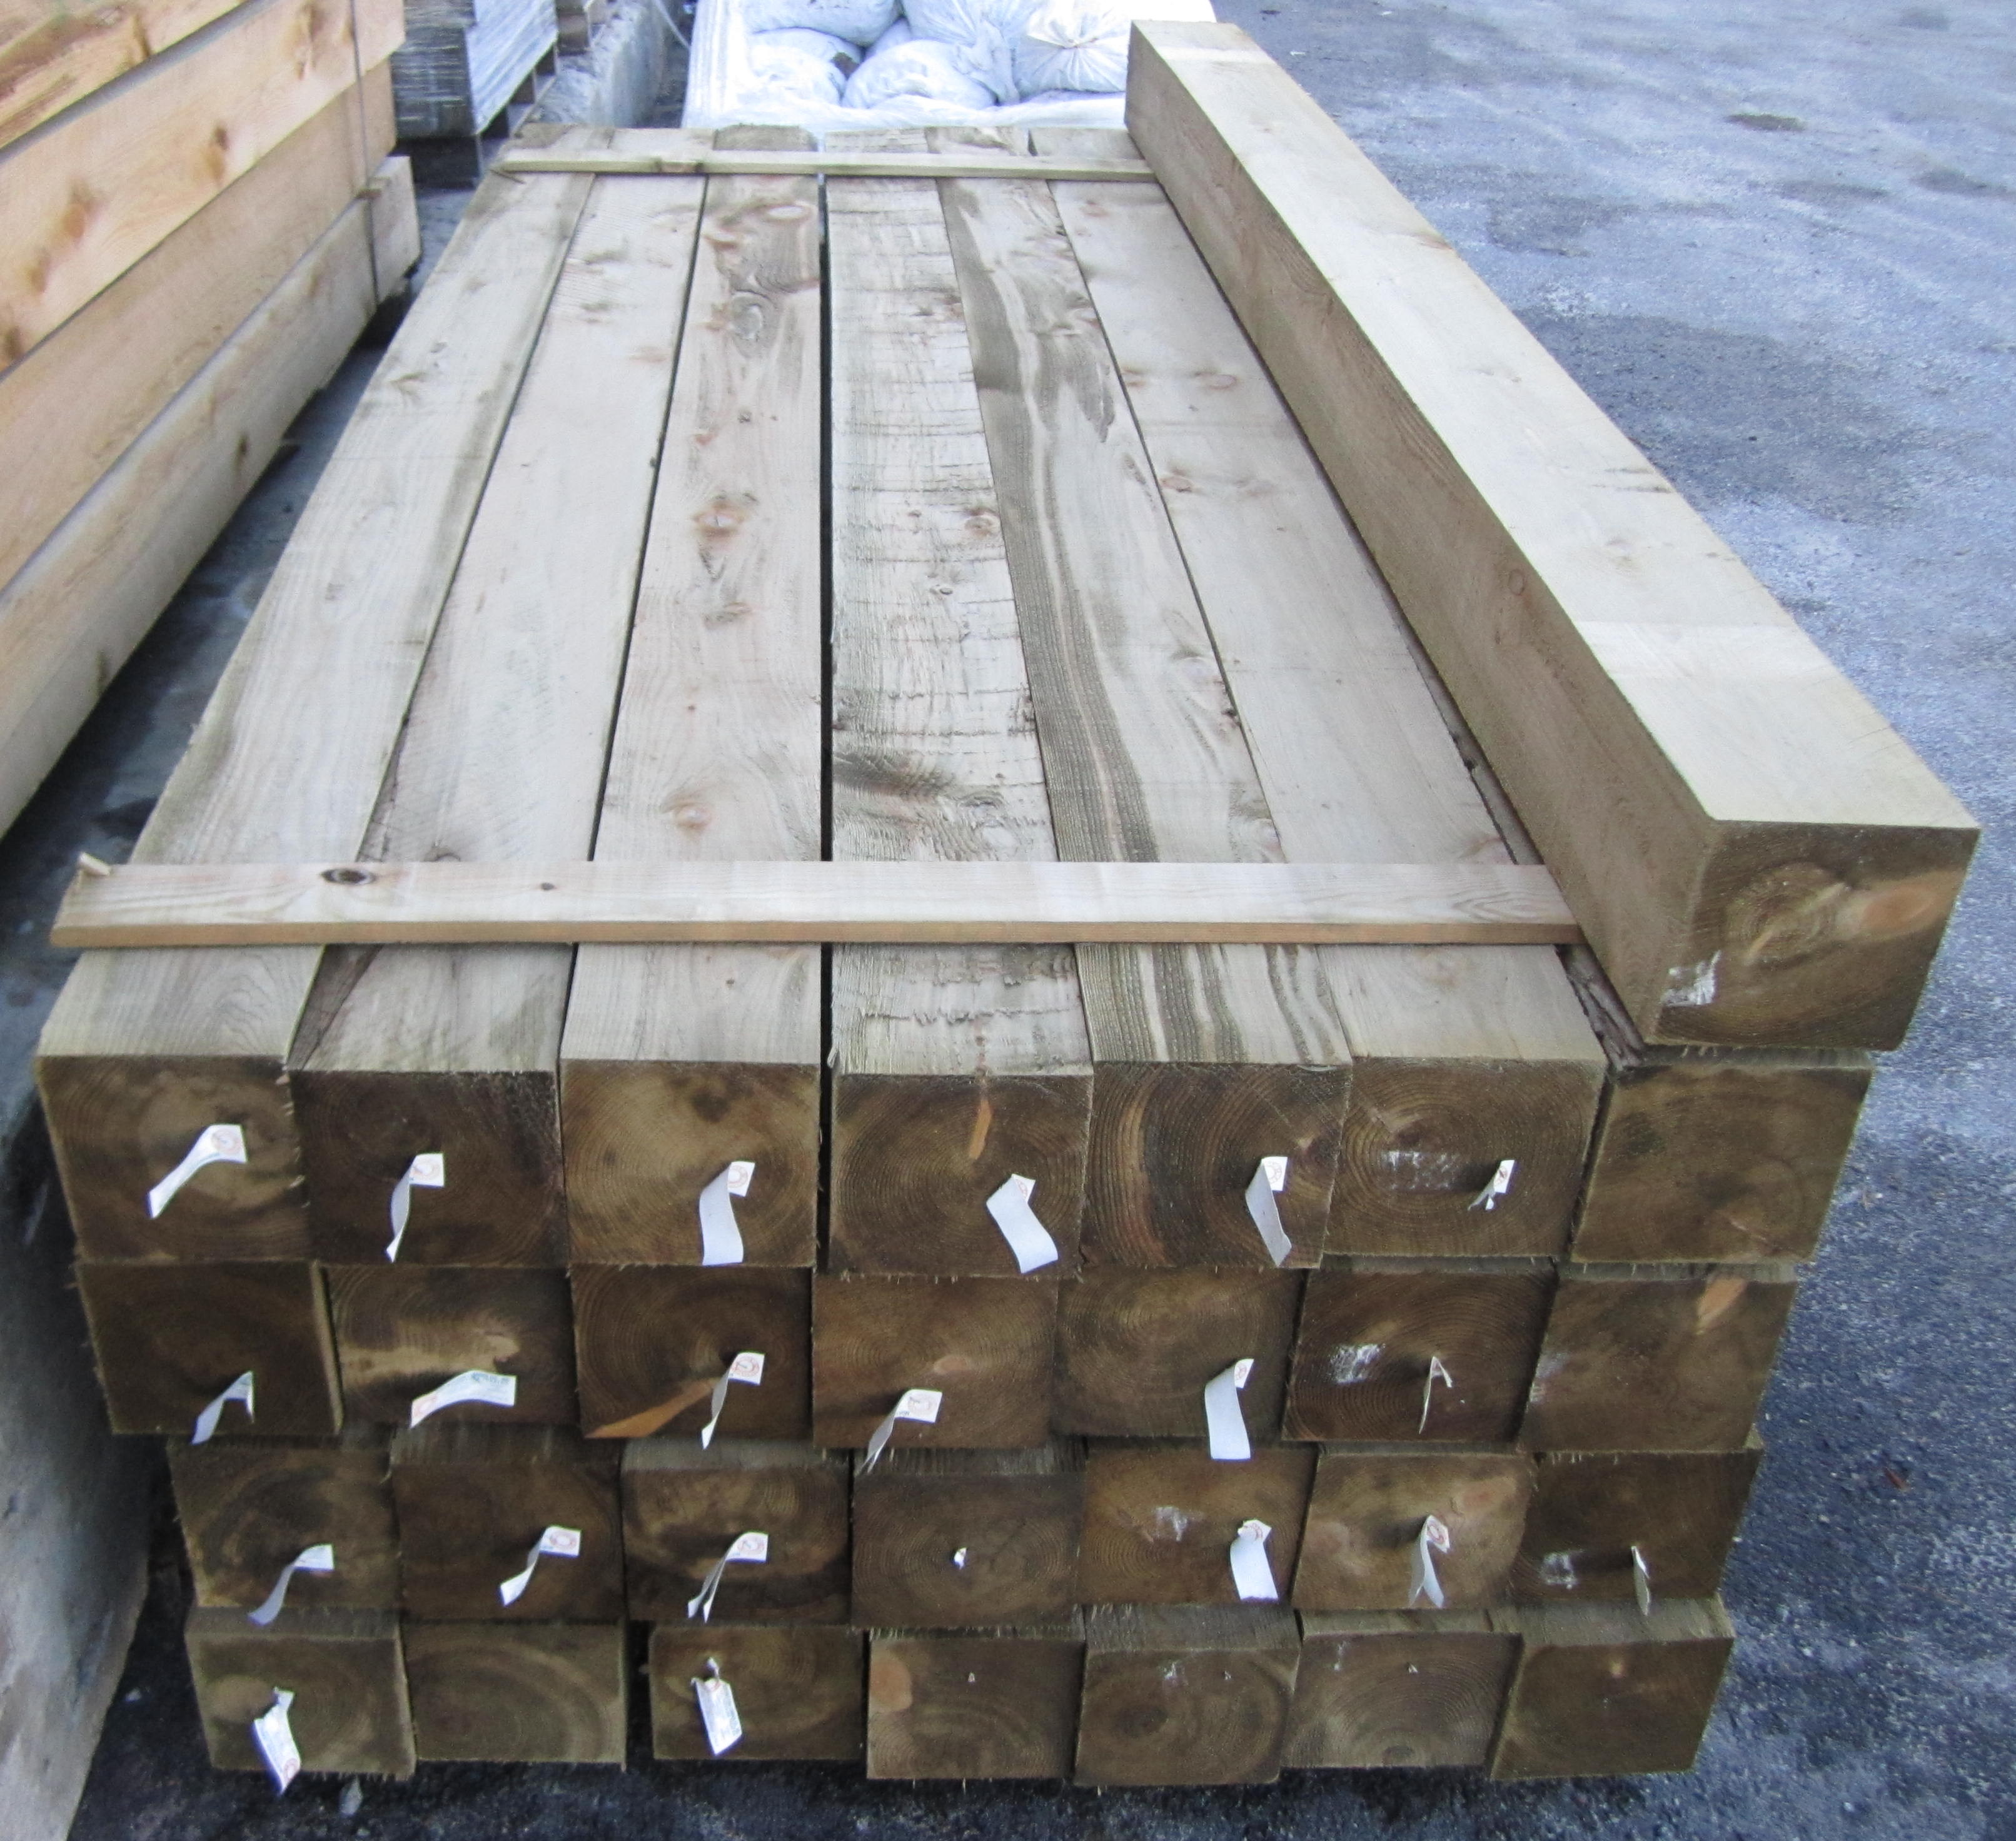 Railroad ties prices